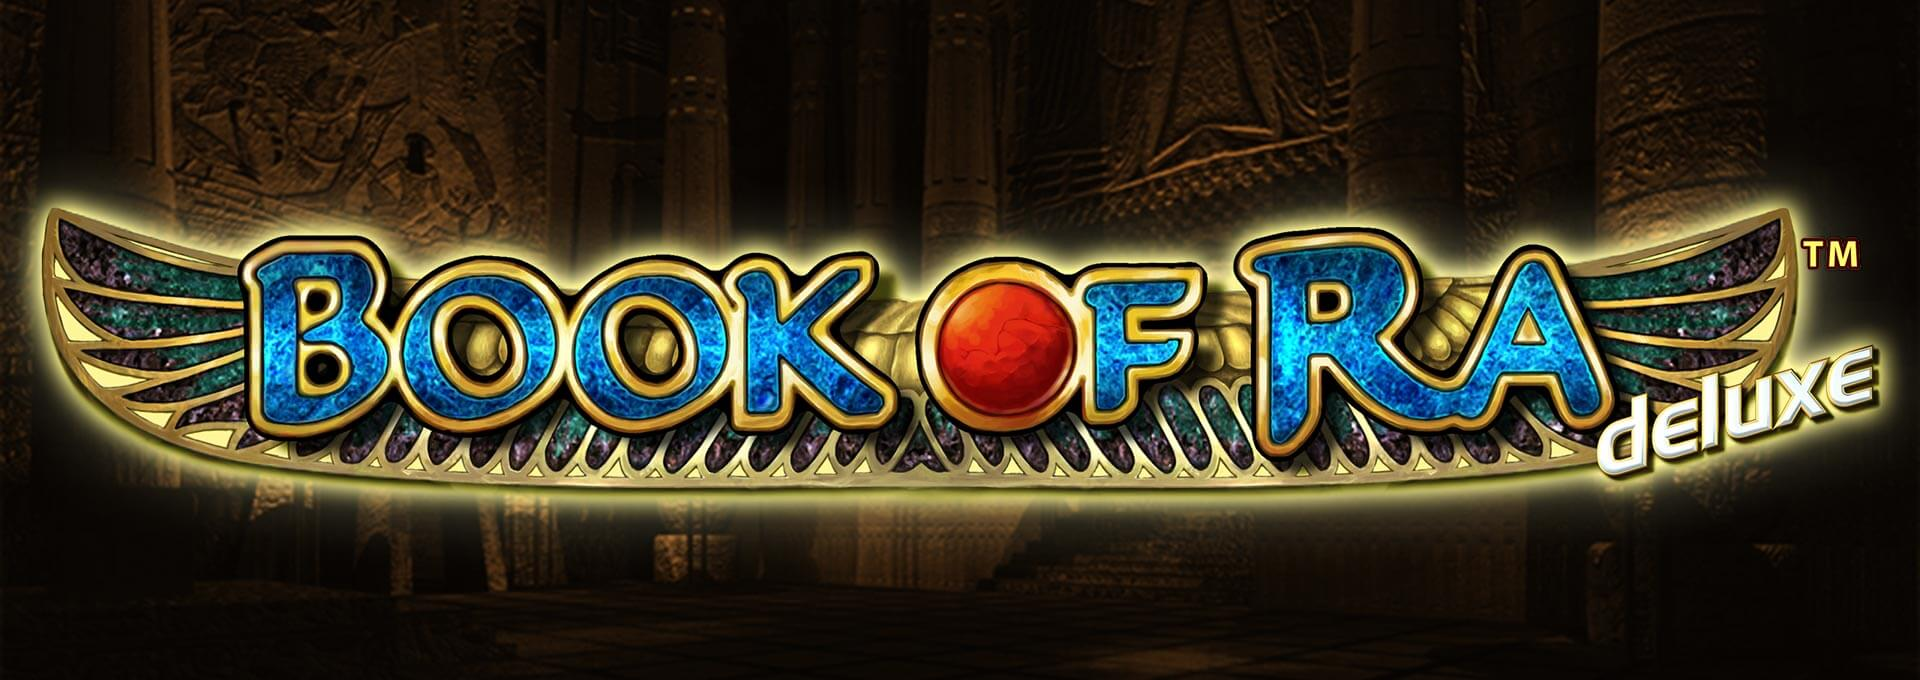 online casino sites book of ra deluxe slot